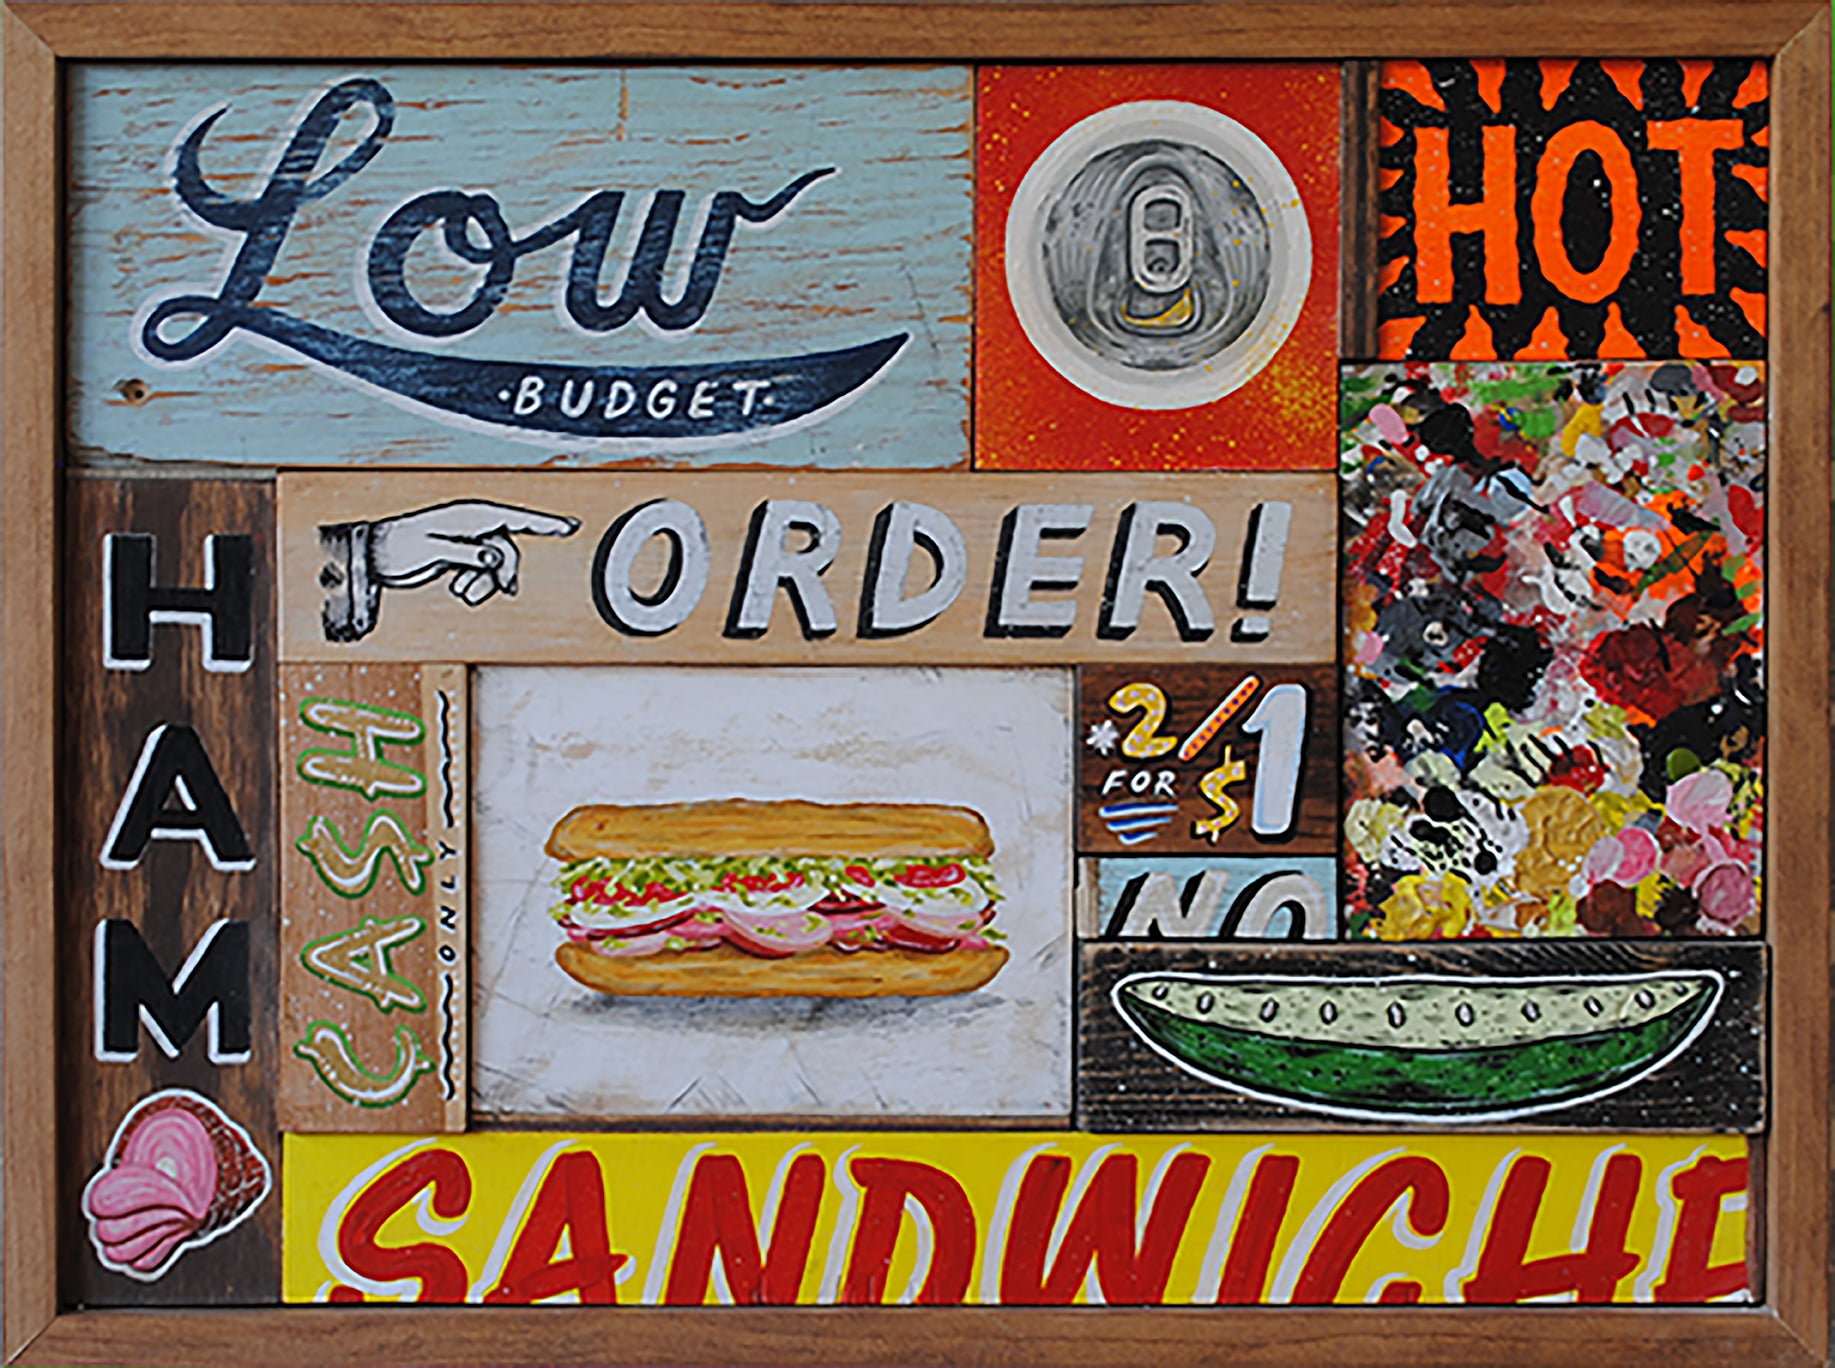 Low Budget Hot Sandwich Original by Erik Lundquist